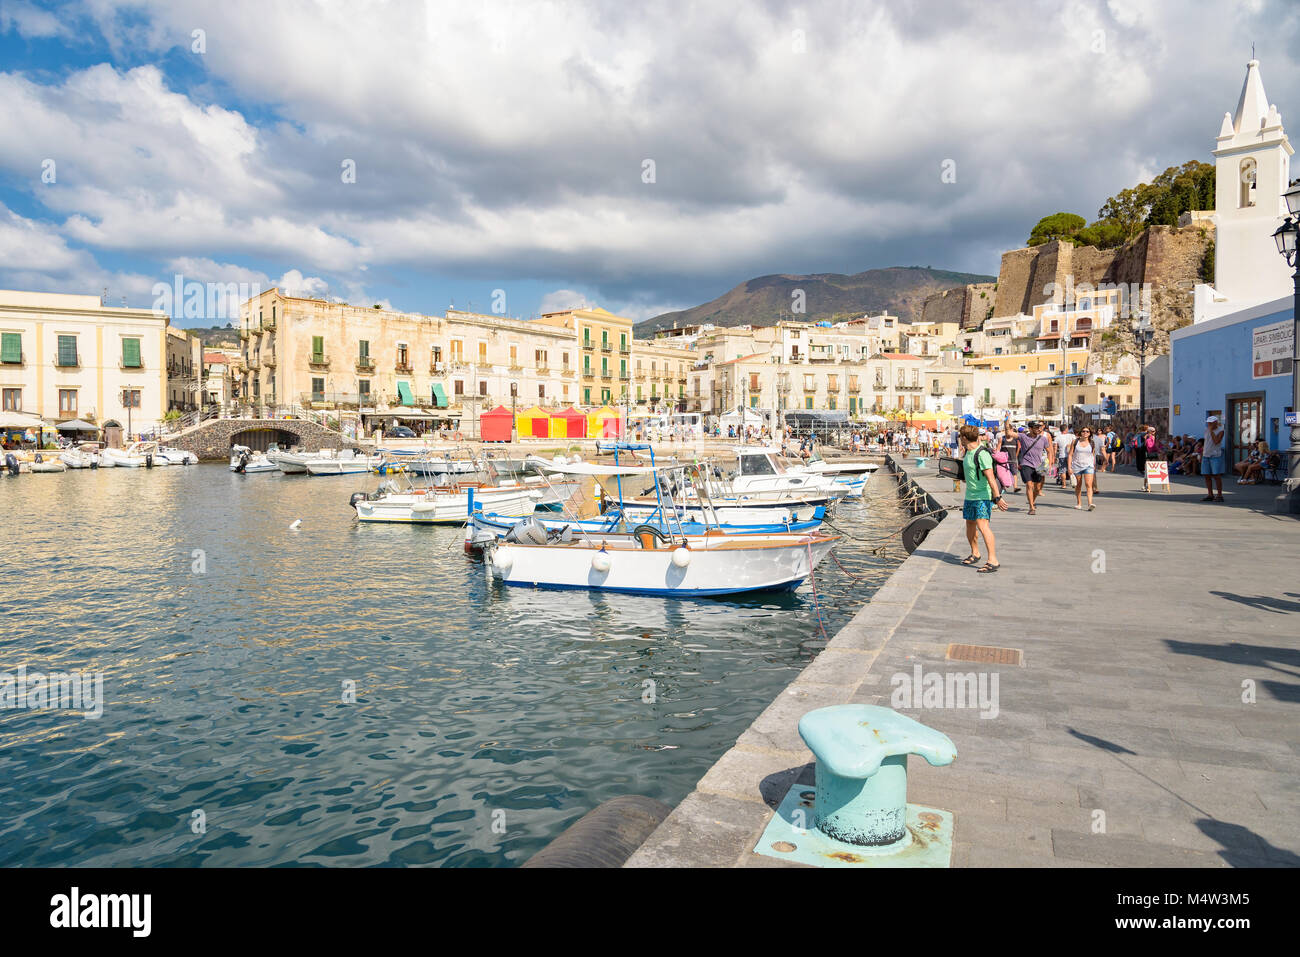 Lipari, Aeolian Islands, Italy - August 22, 2017: Tourists wait for their ship in Marina Corta on Lipari Island, Stock Photo